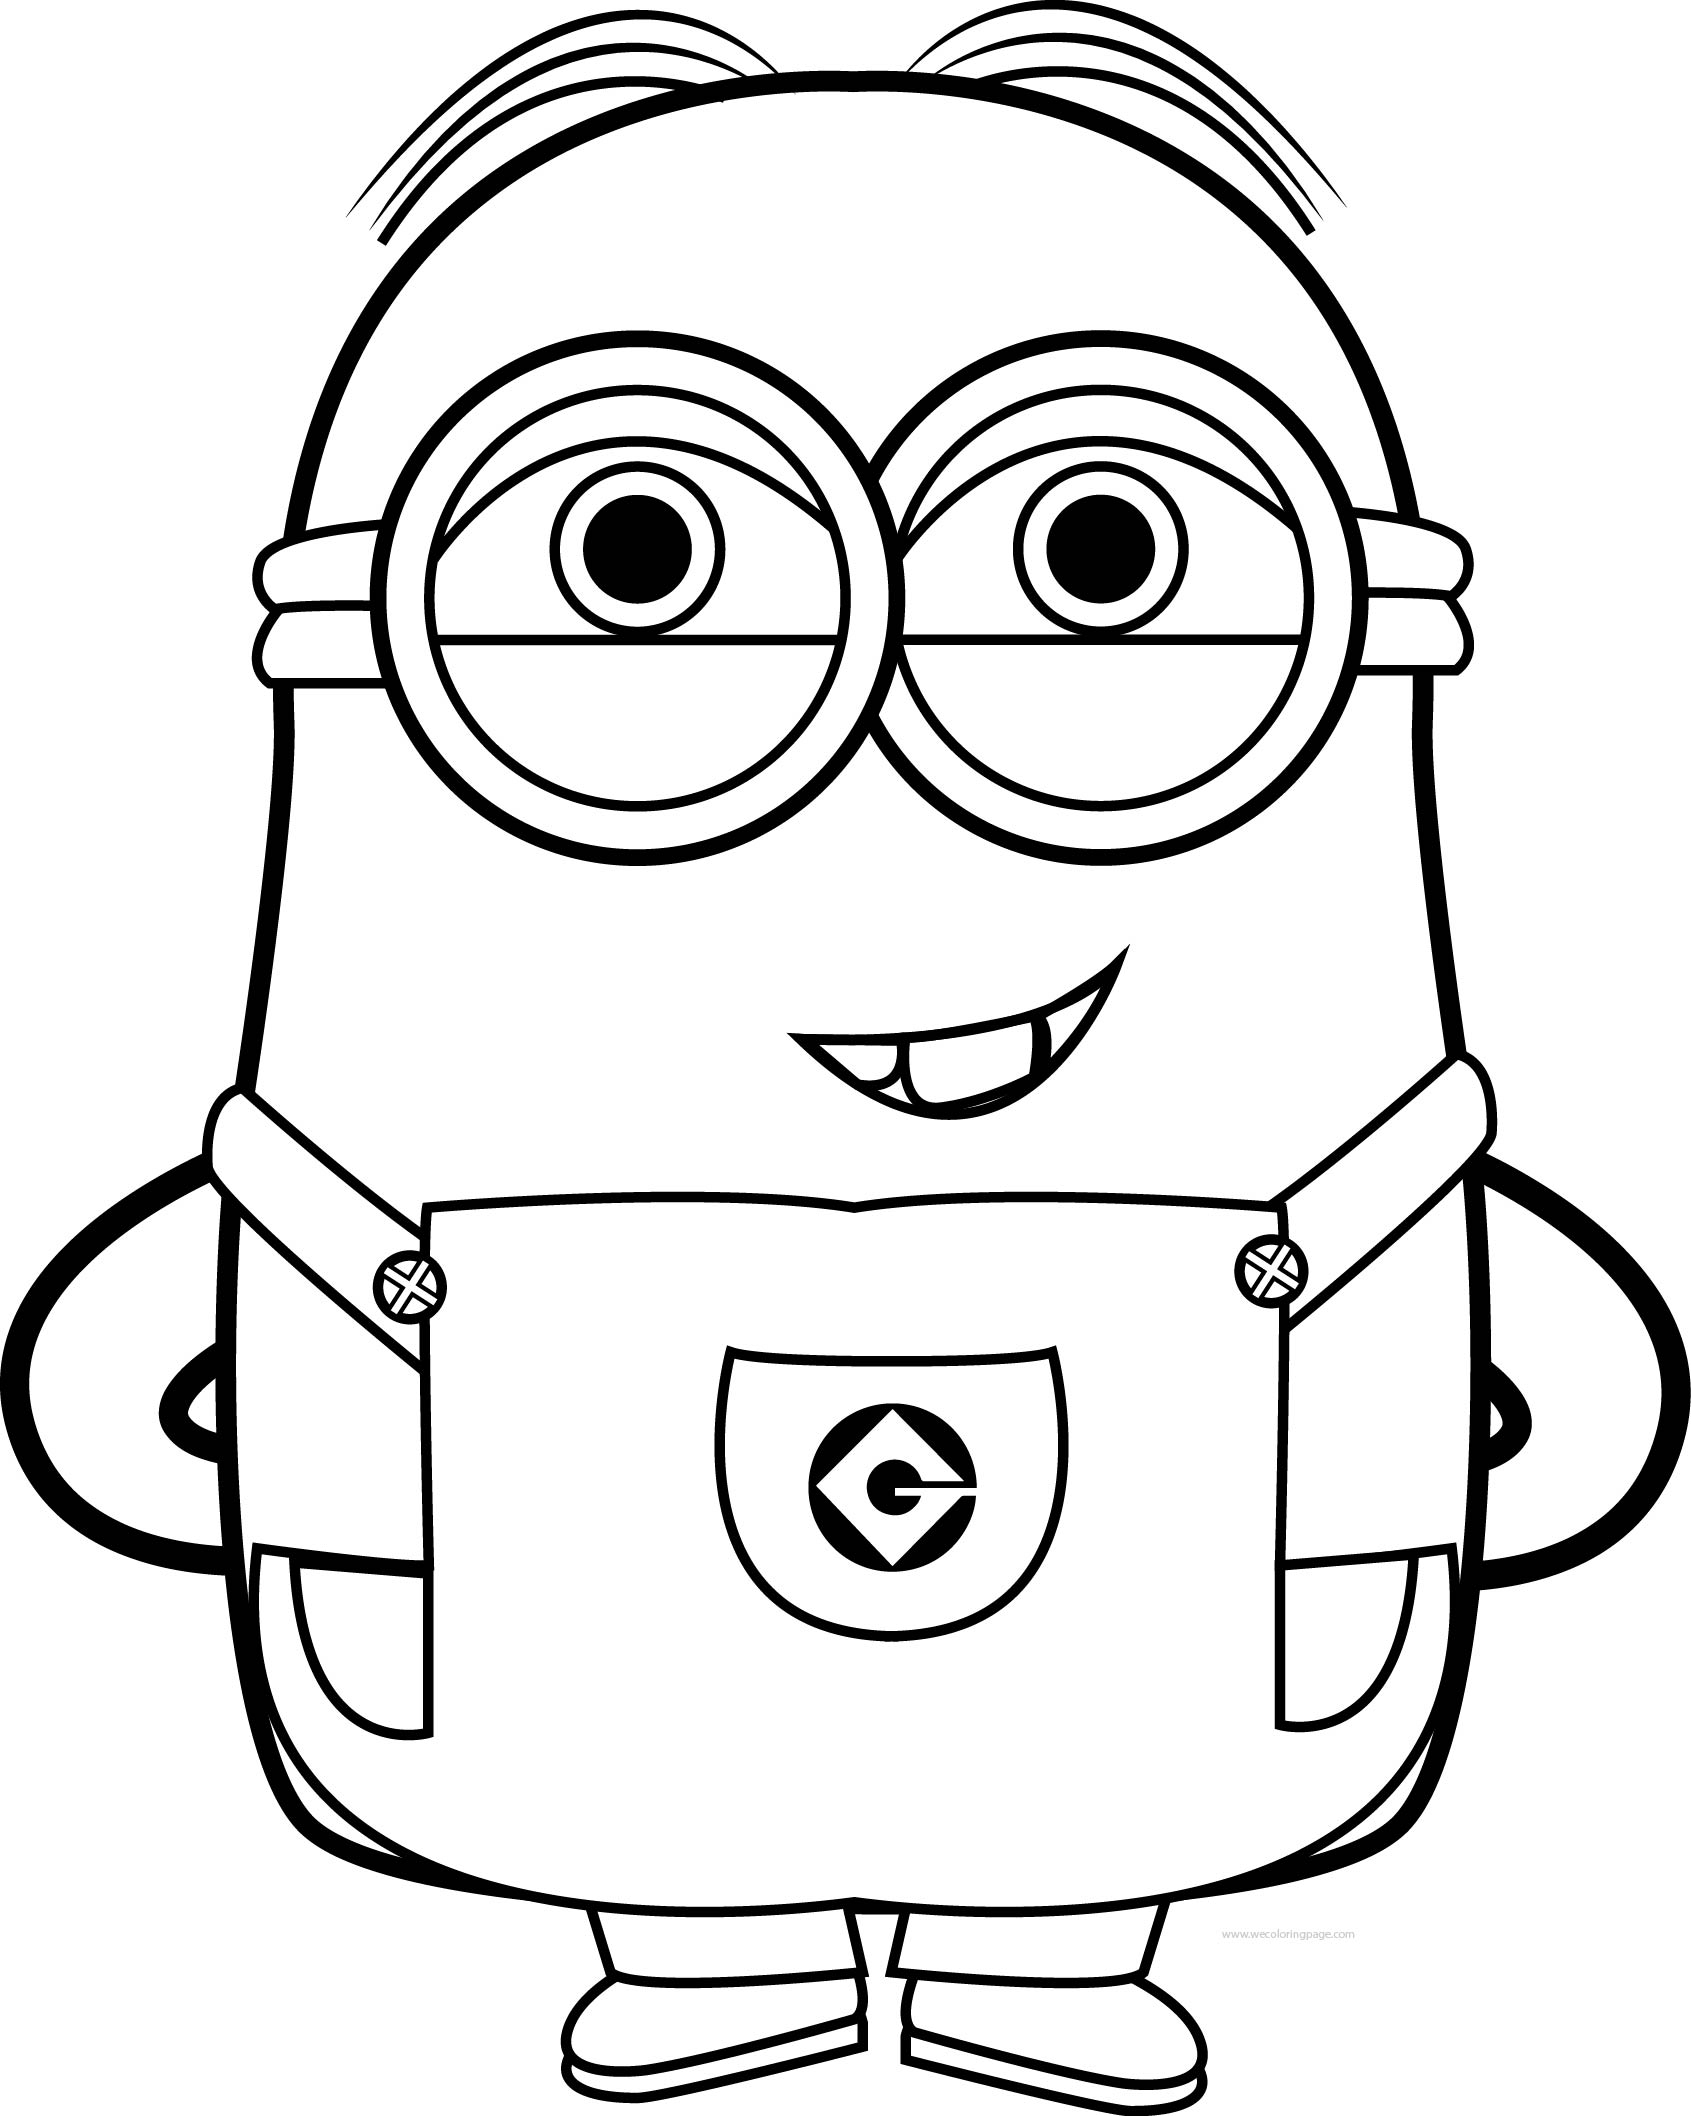 coloring printable minions bob the minion coloring pages at getcoloringscom free coloring minions printable